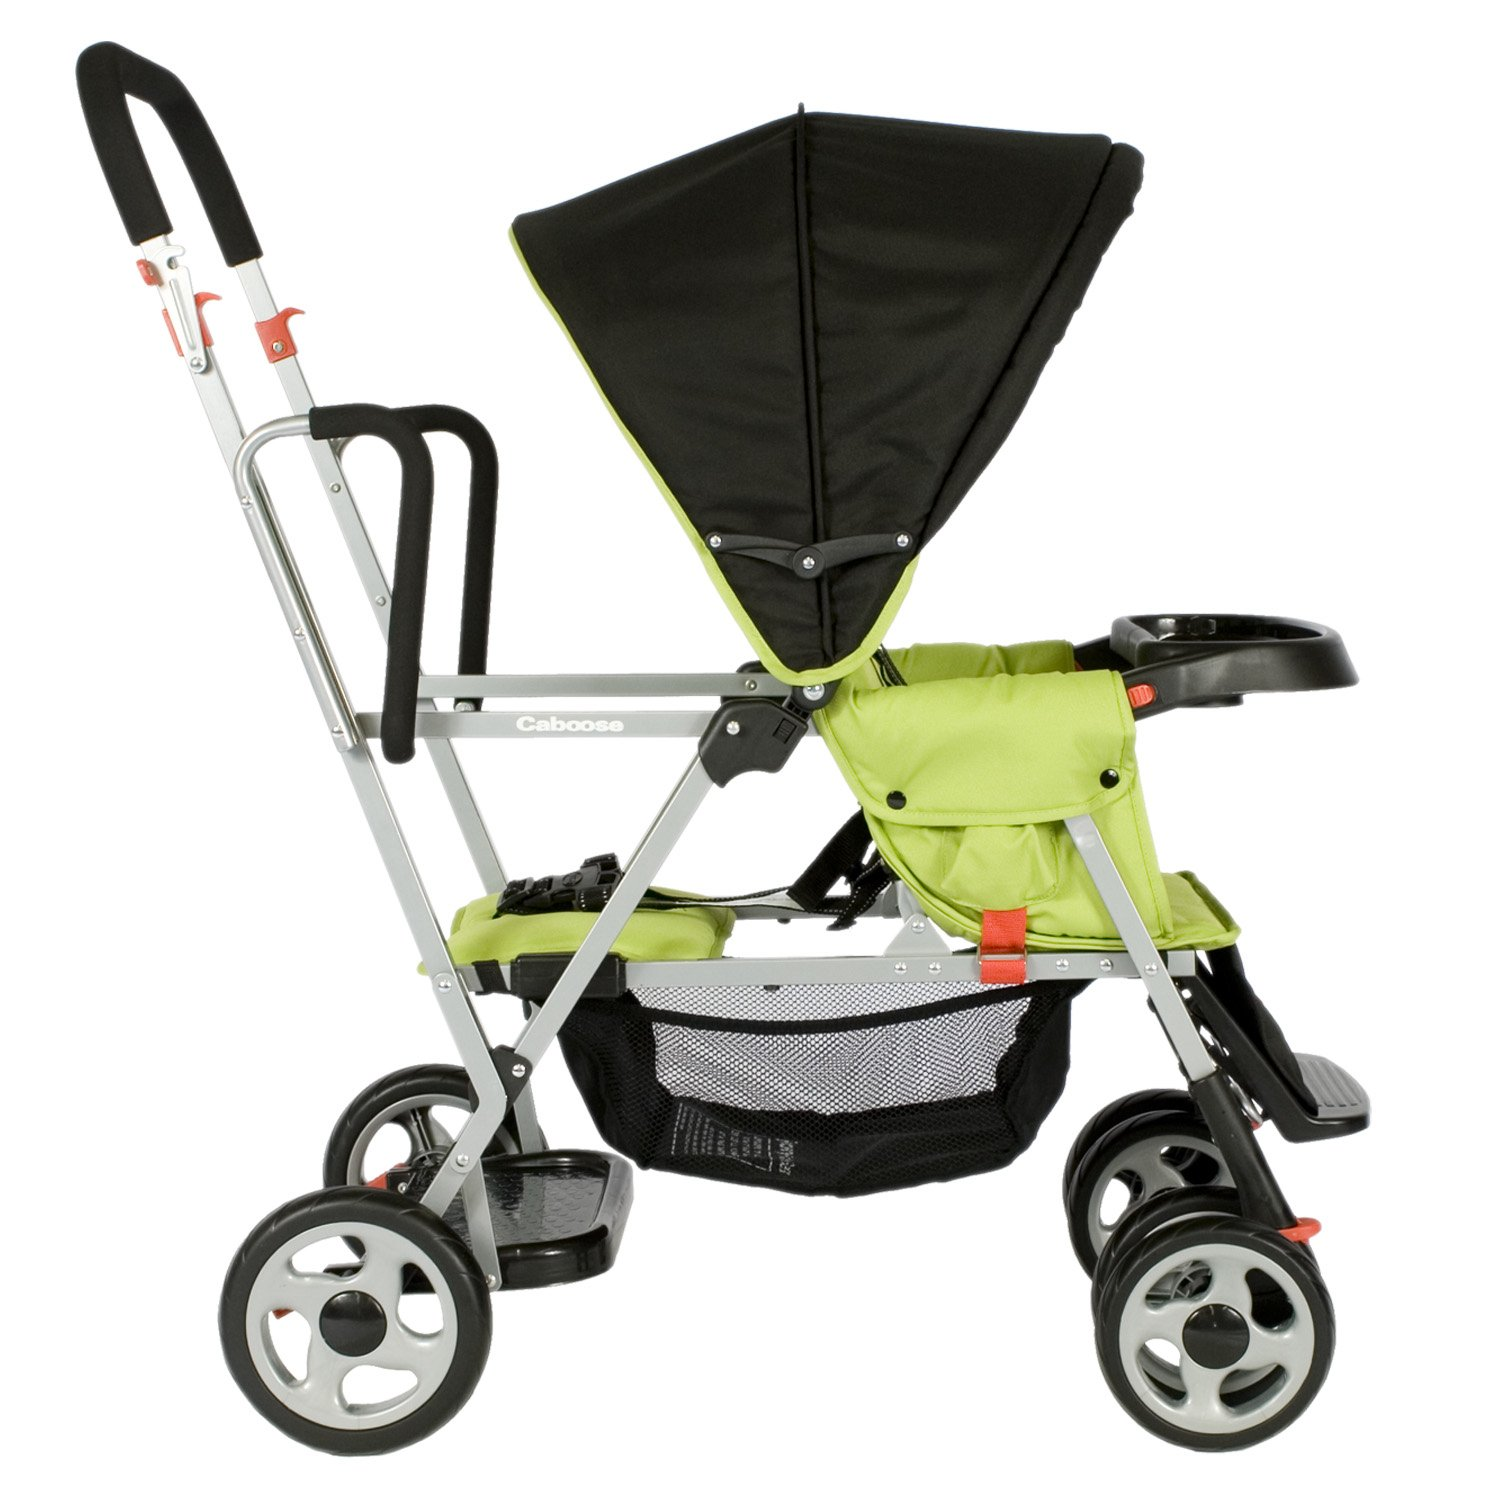 Joovy Caboose Stand-On Tandem Stroller, Appletree Review